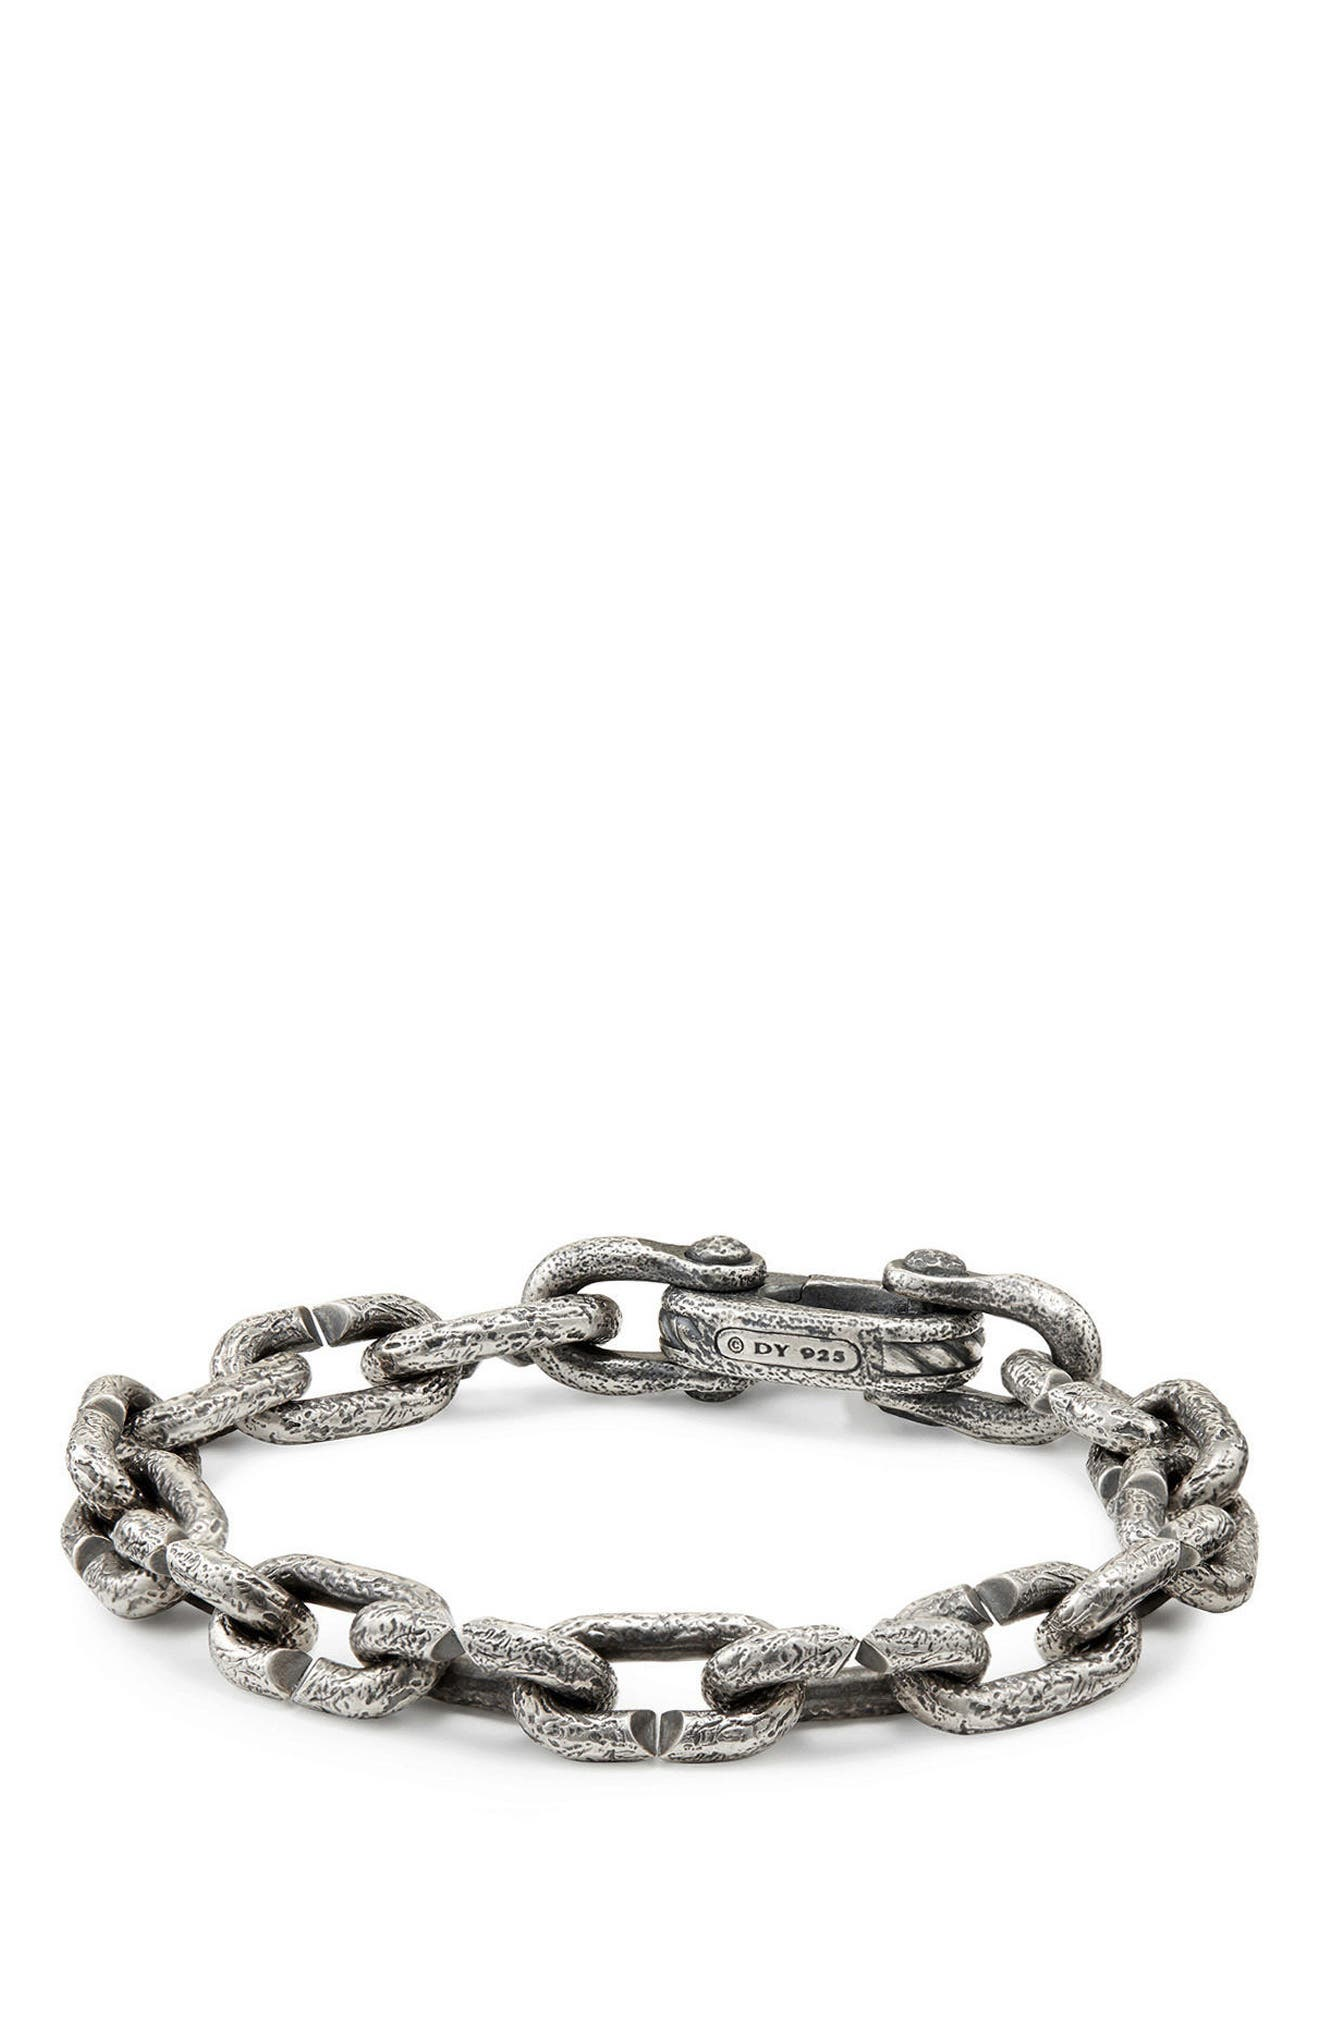 David Yurman Jewelry for Men Nordstrom